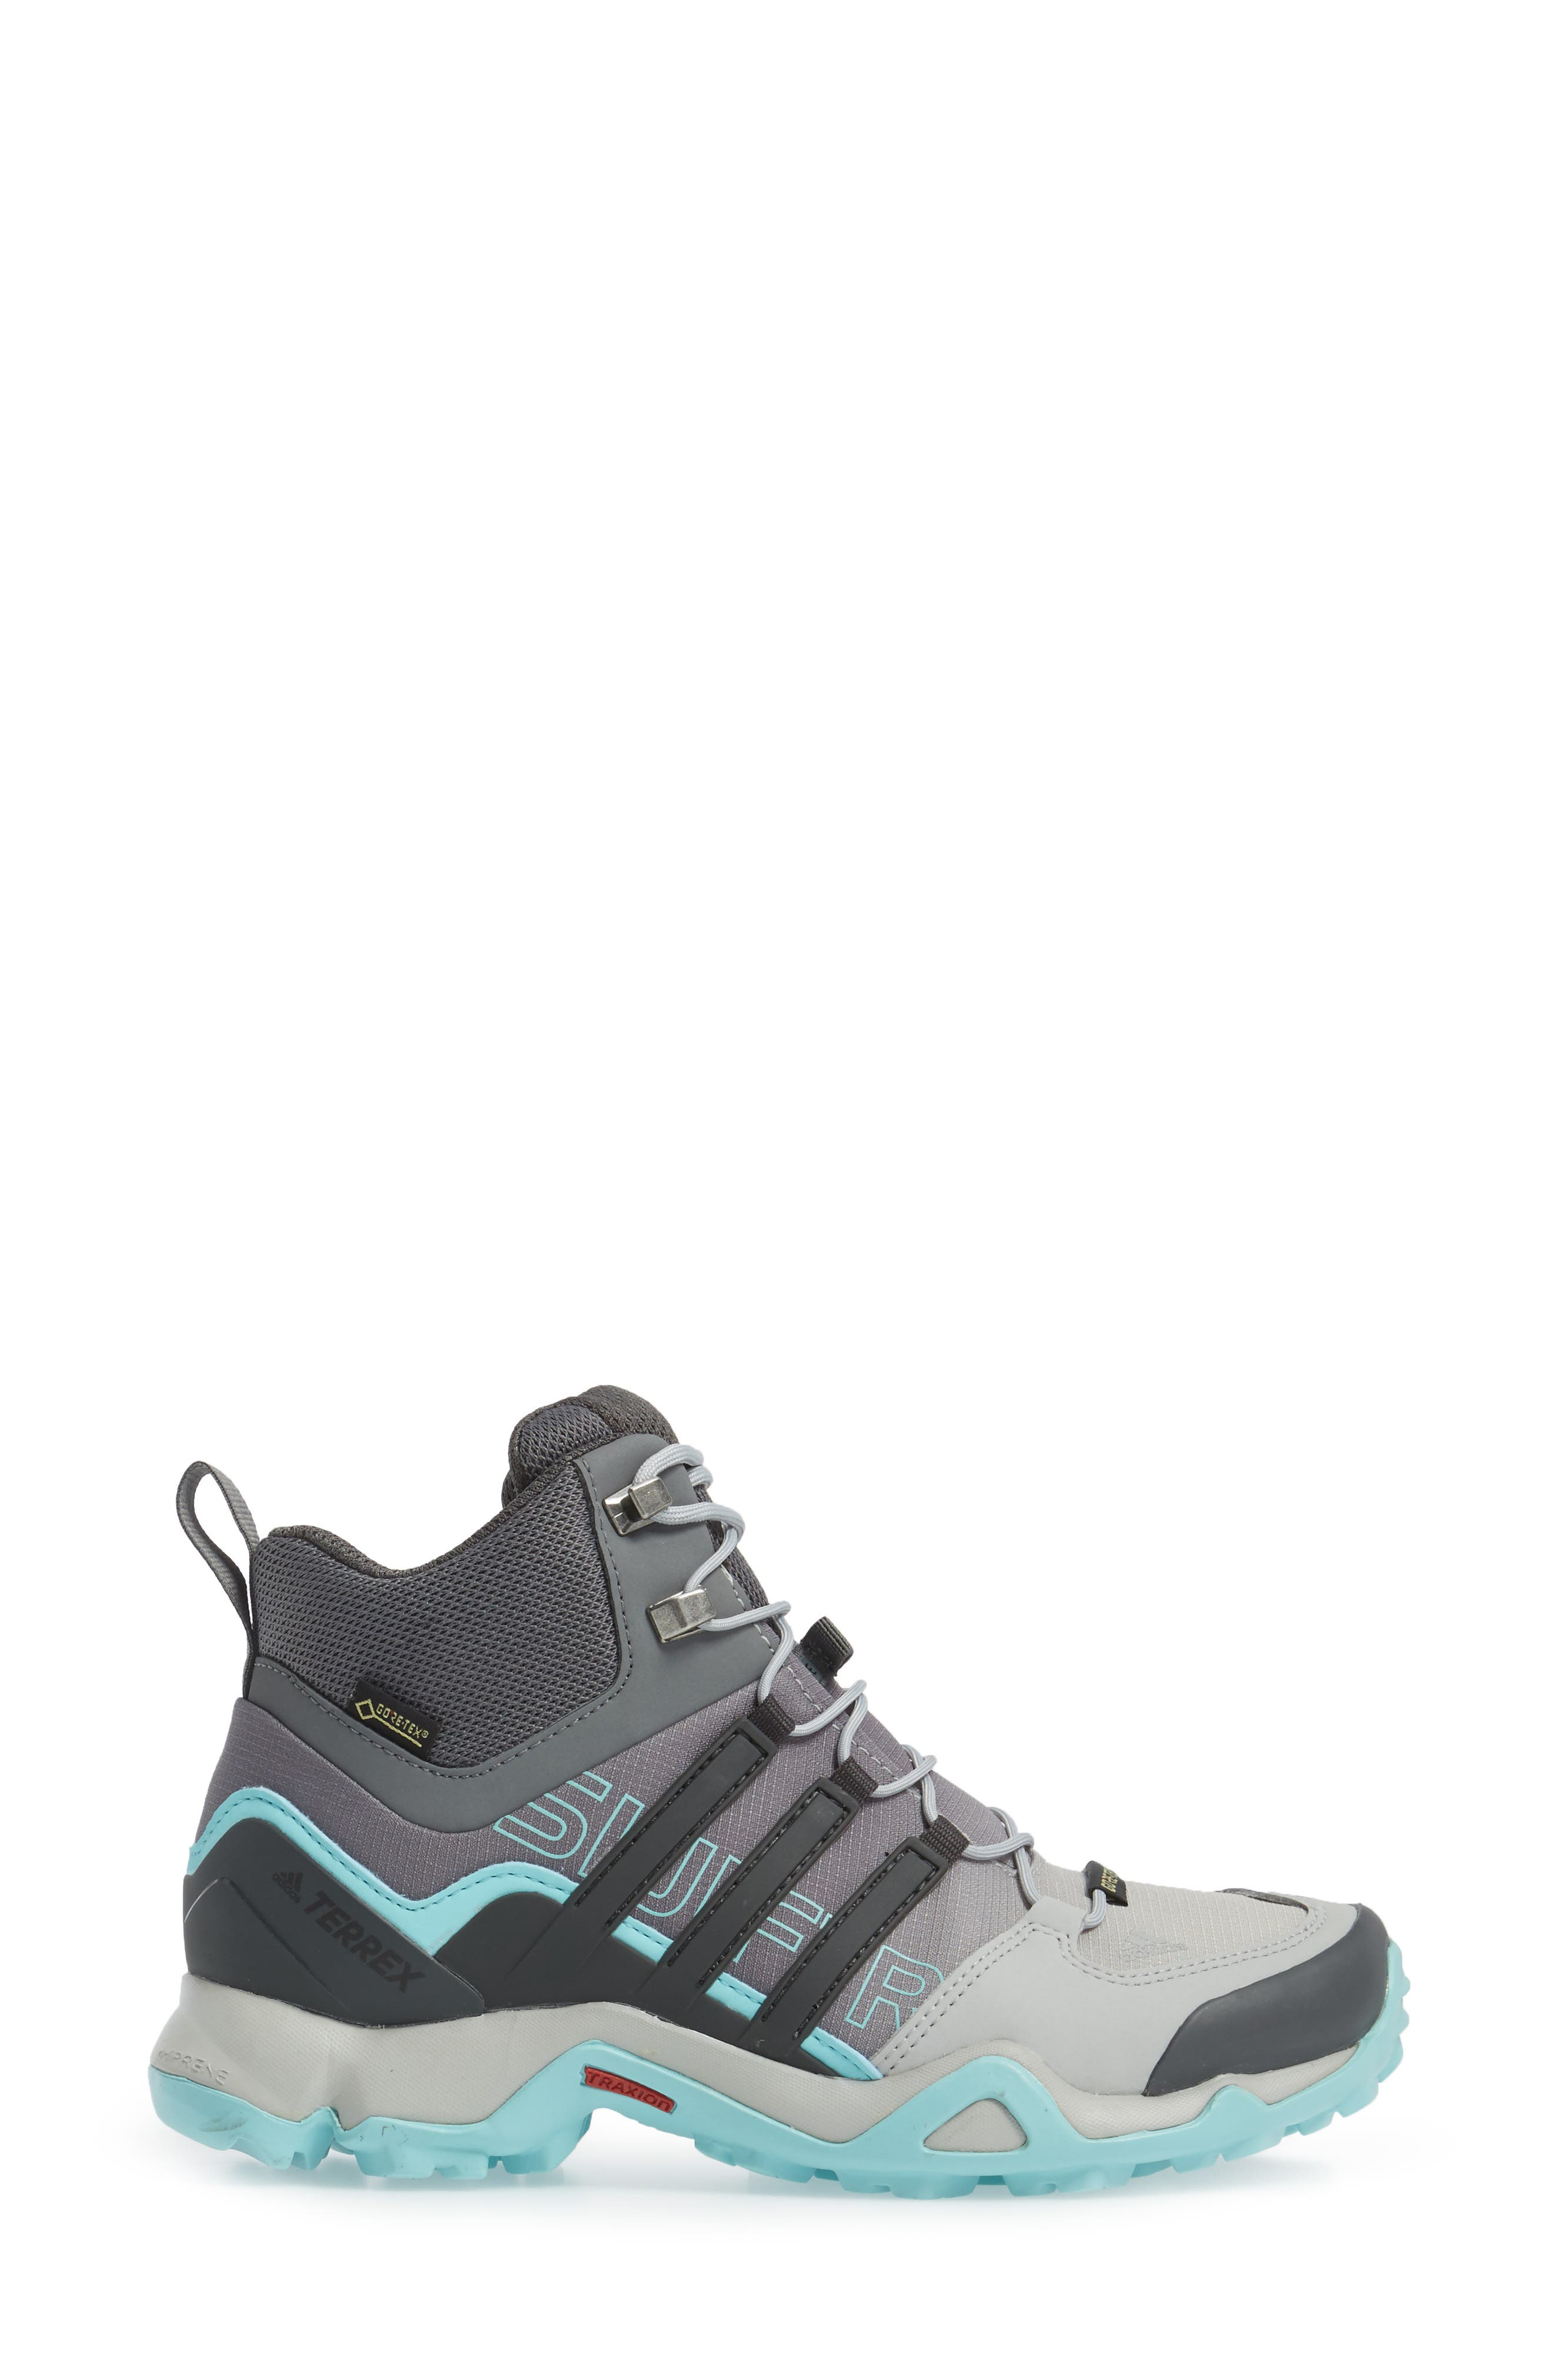 Alternate Image 3  - adidas Terrex Swift R GTX Mid Hiking Boot (Women)